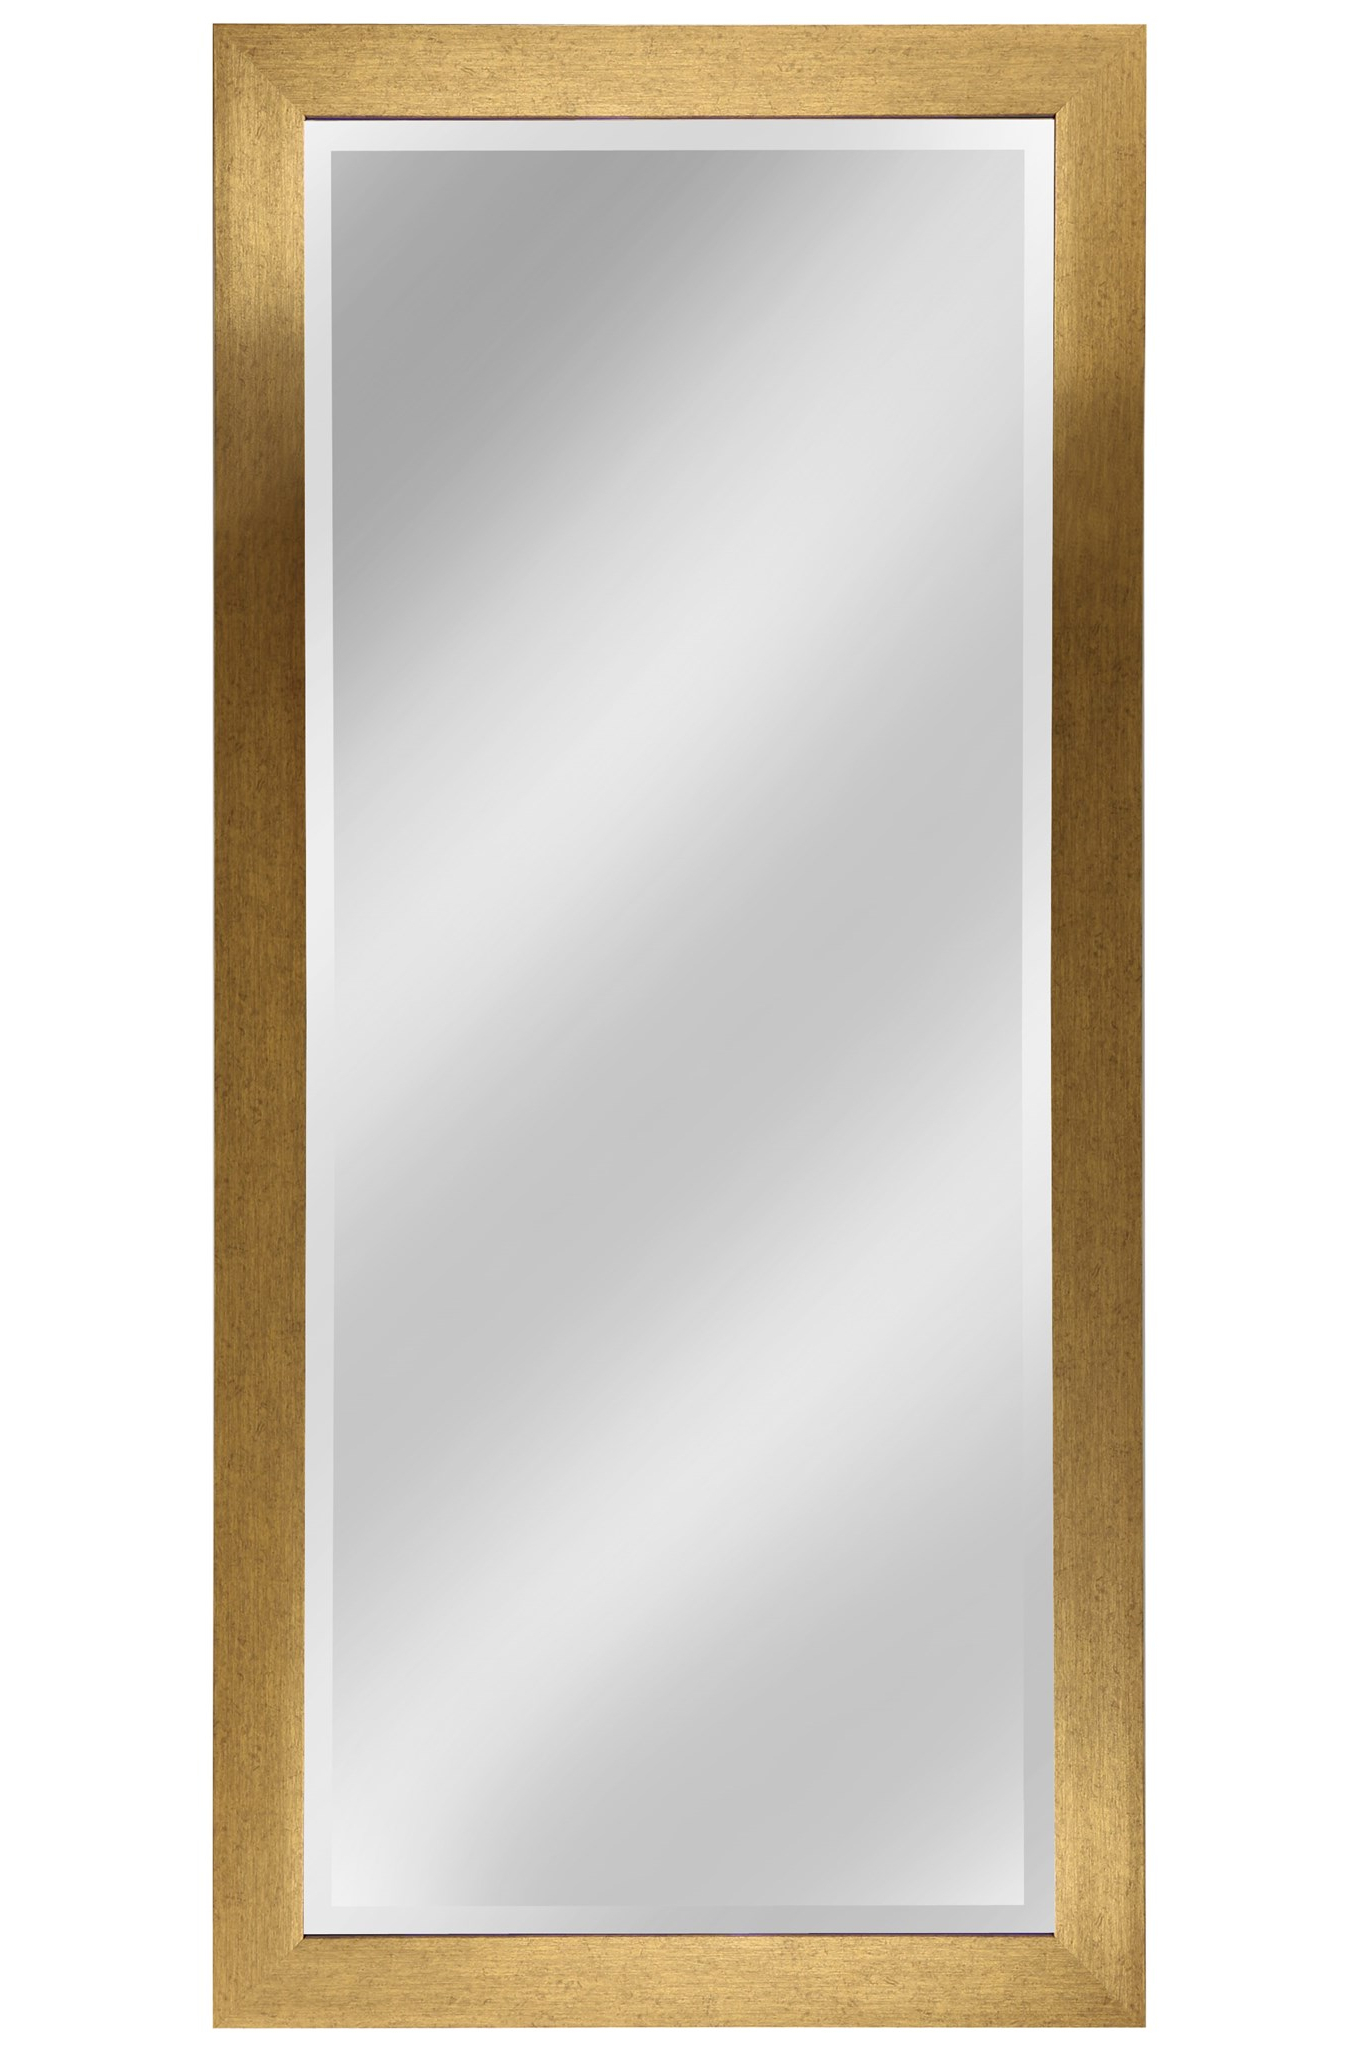 Honey Oak Framed Wall Mirror With Well Liked Oak Framed Wall Mirrors (View 14 of 20)